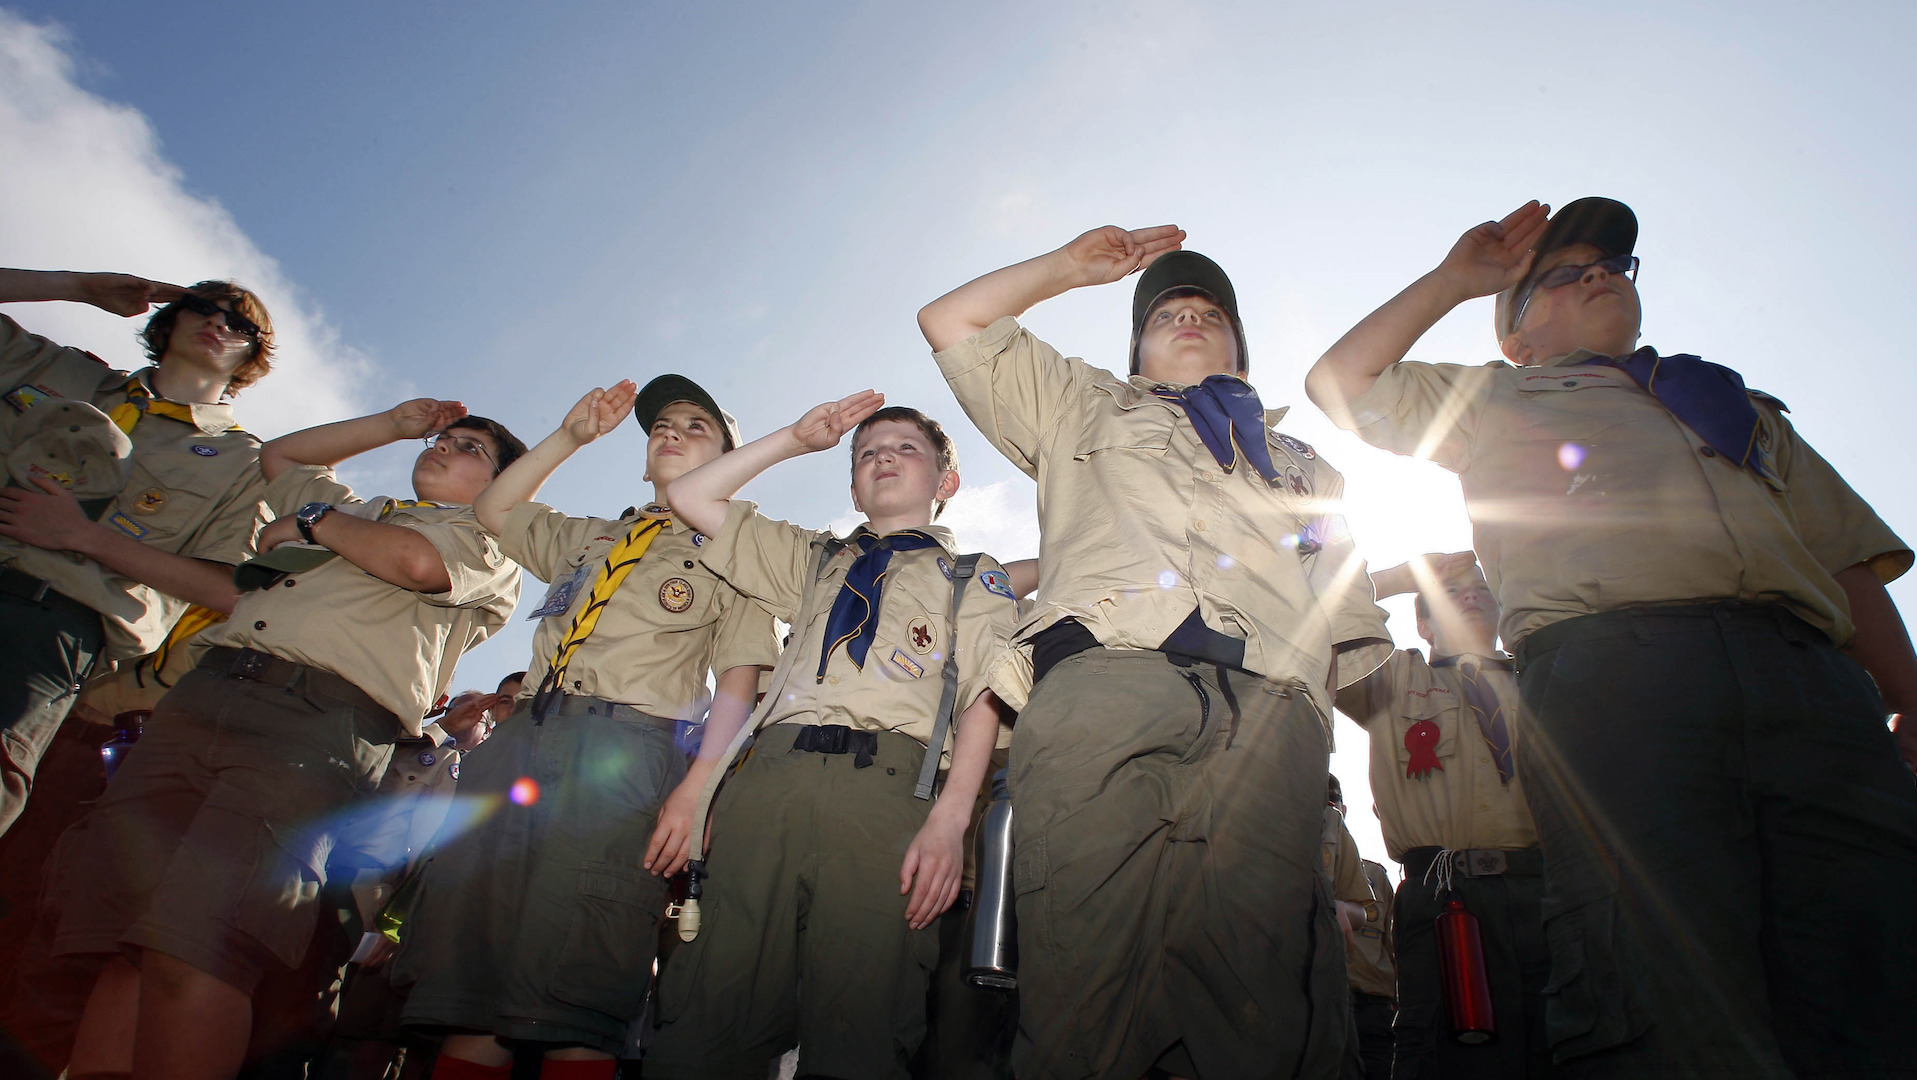 Boy Scout leader sang naked in front of kids, and organization failed to investigate: Lawsuit